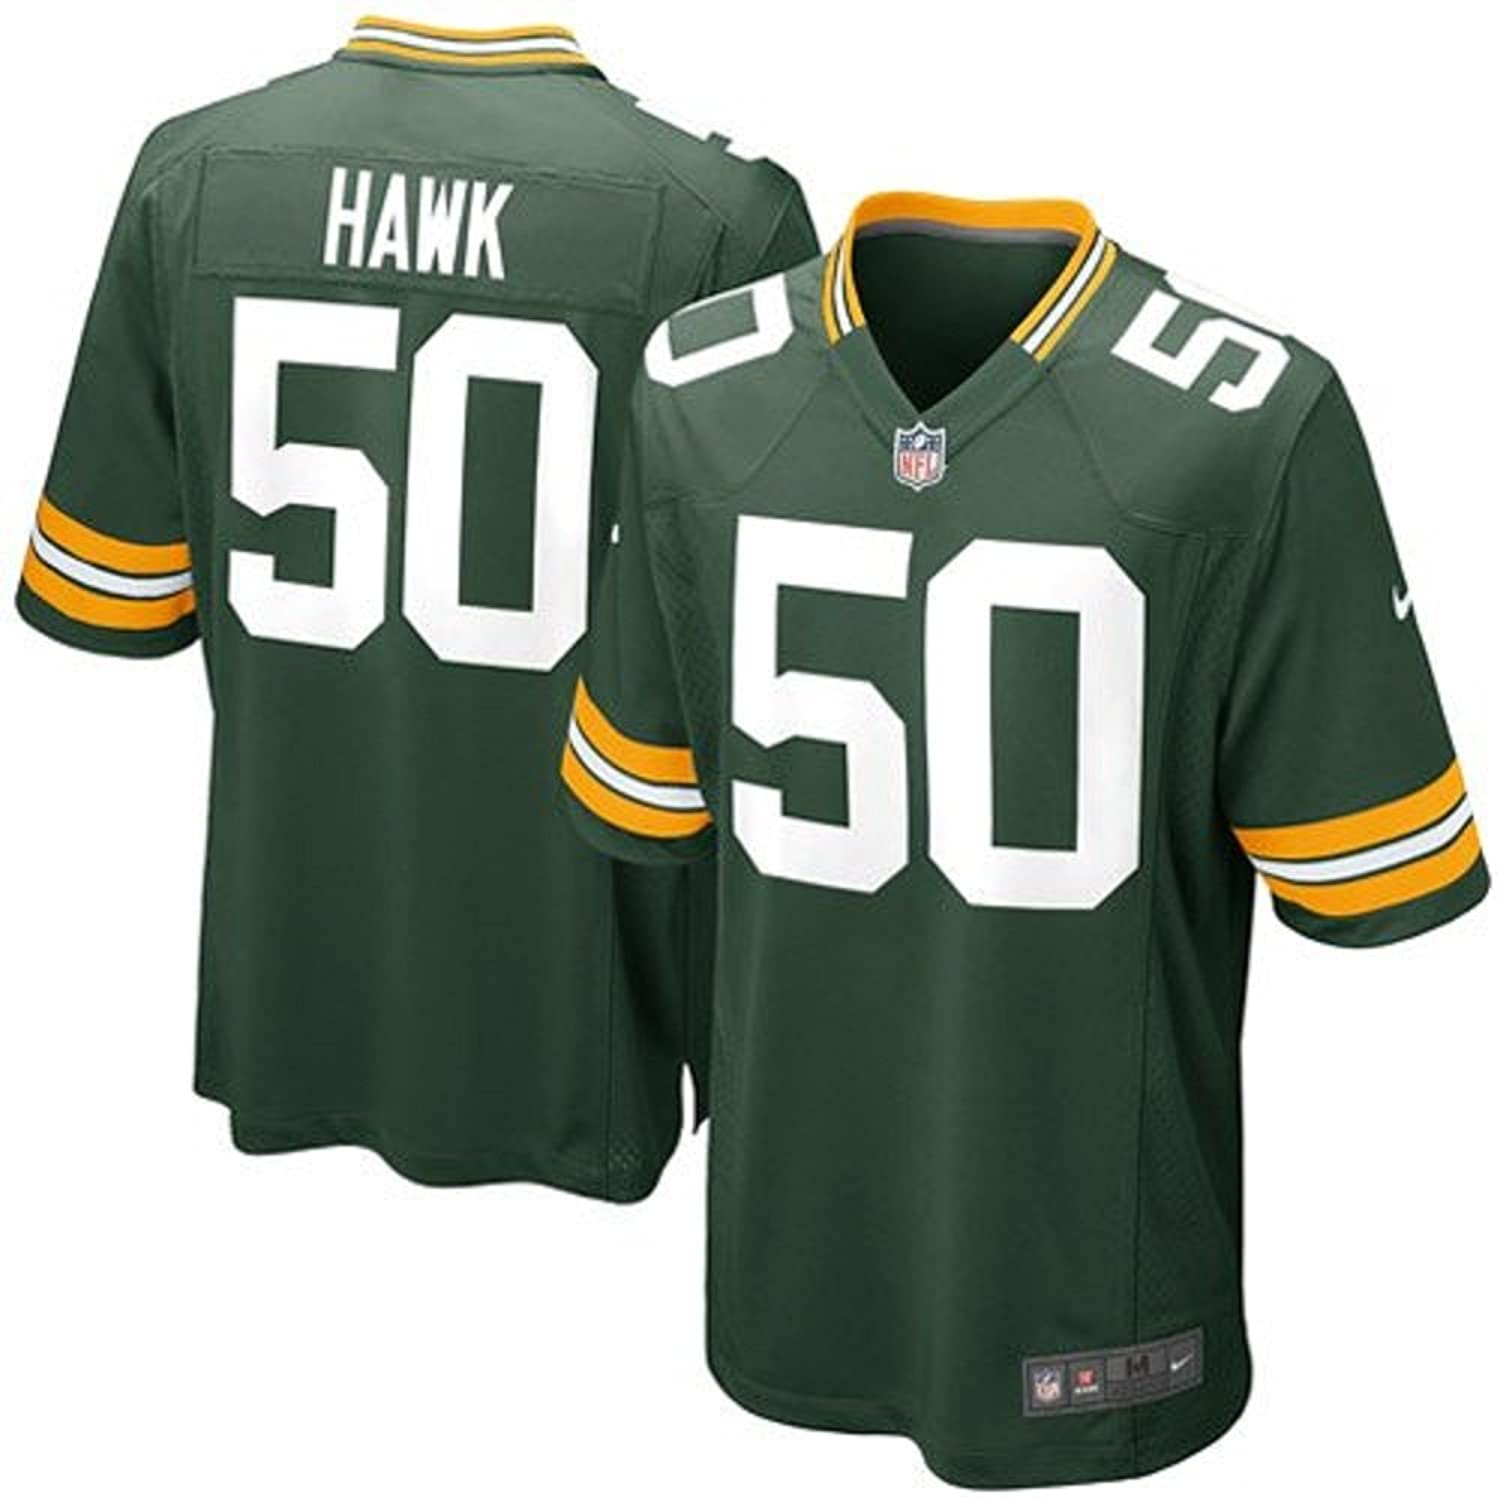 reputable site f2af7 fc975 AJ Hawk Green Bay Packers NFL Nike Youth Green Home On-Field ...